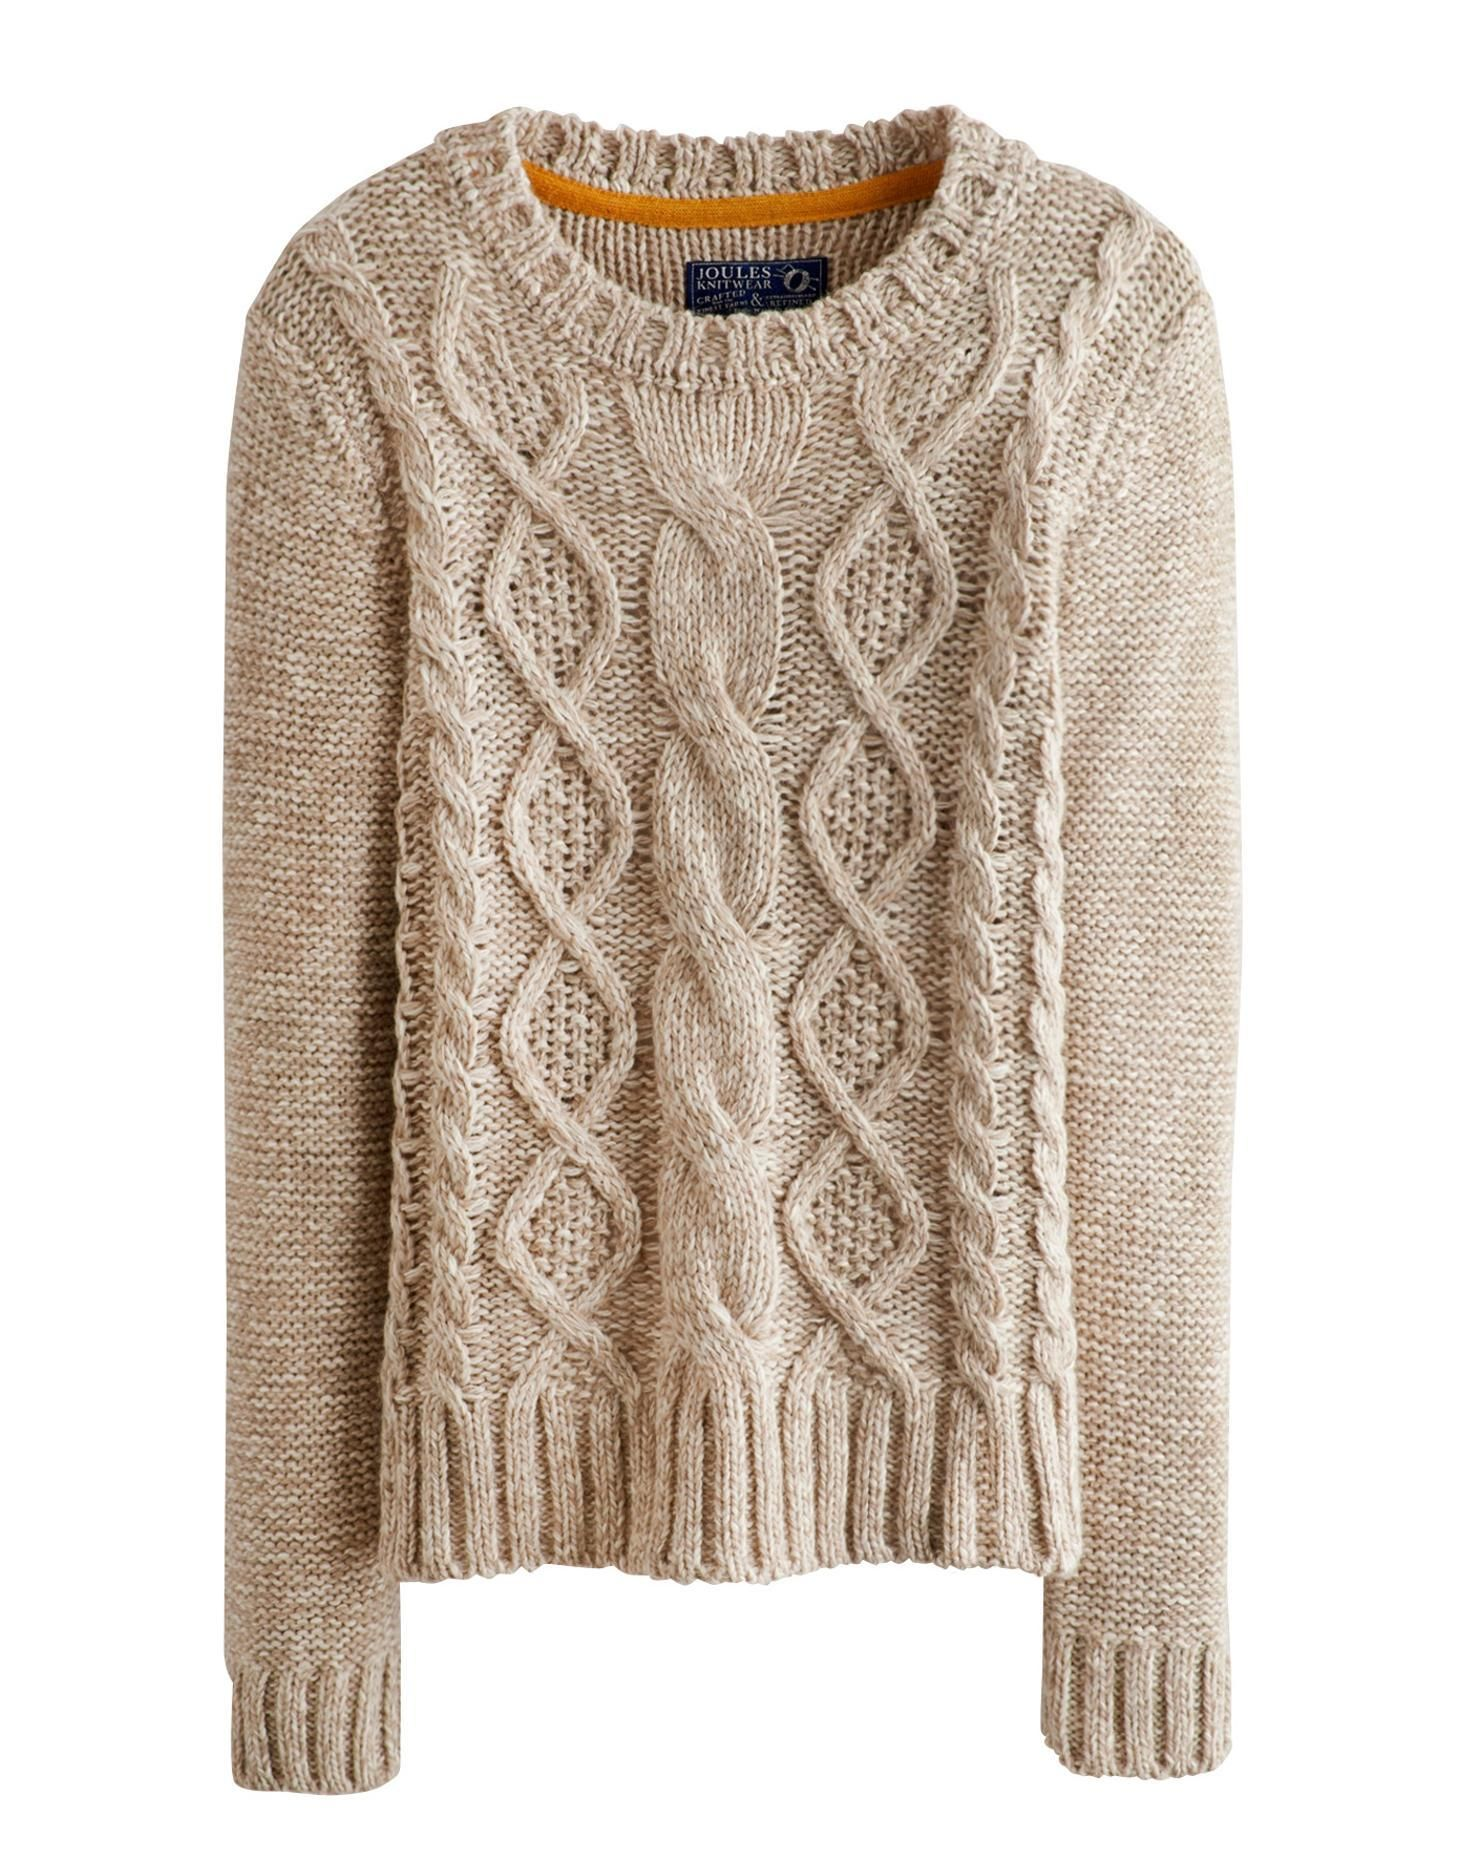 Oatmeal Marl Avelyn Womens Round Neck Cable Knit Sweater